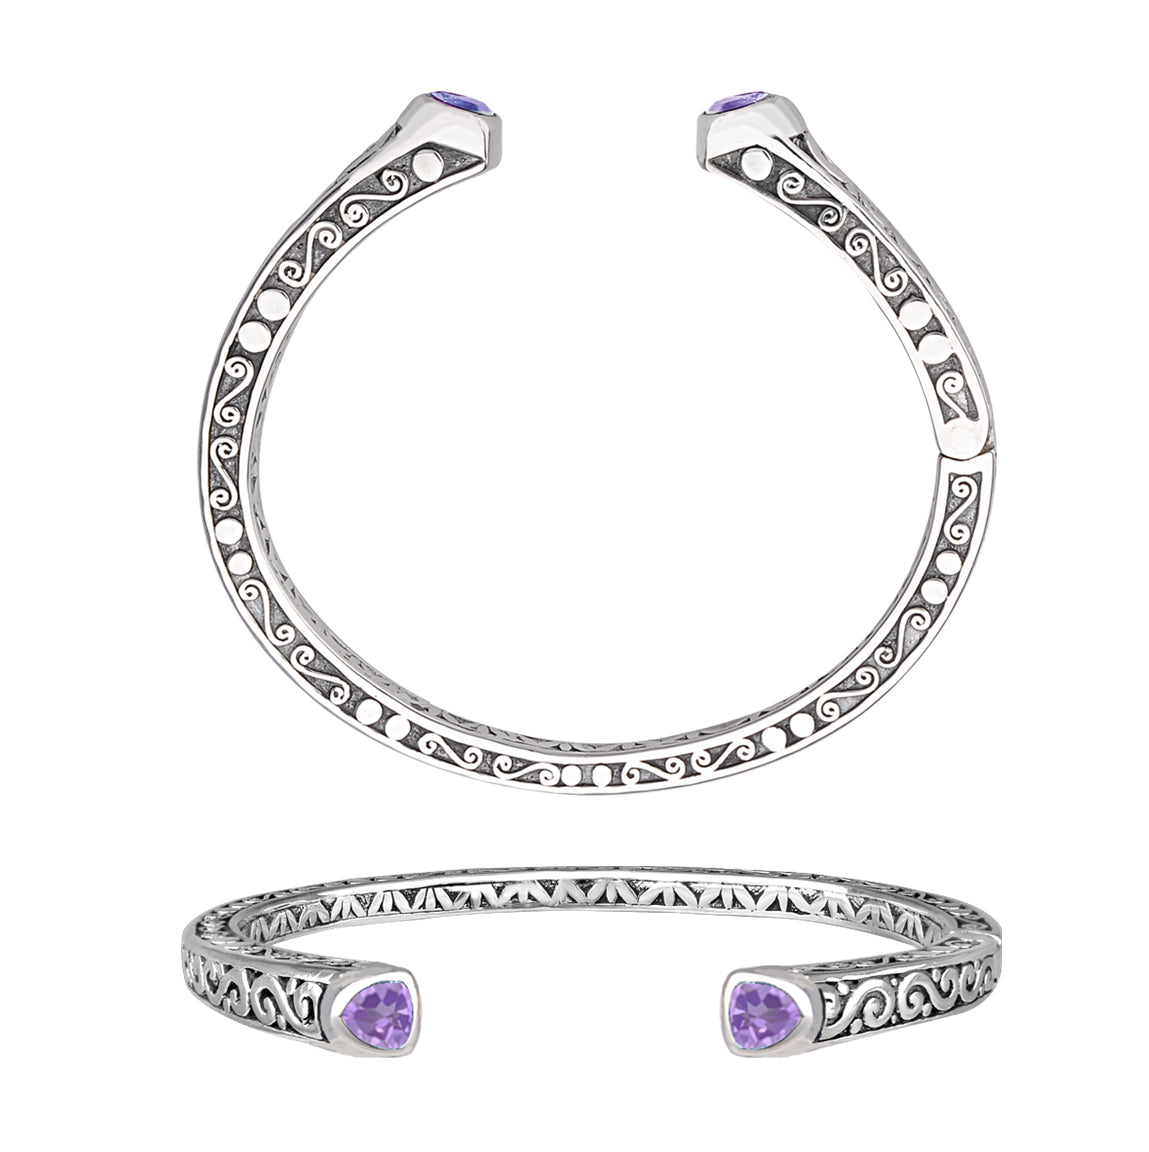 JD B63611 AMETHYST FILIGREE HINGED BRACELET